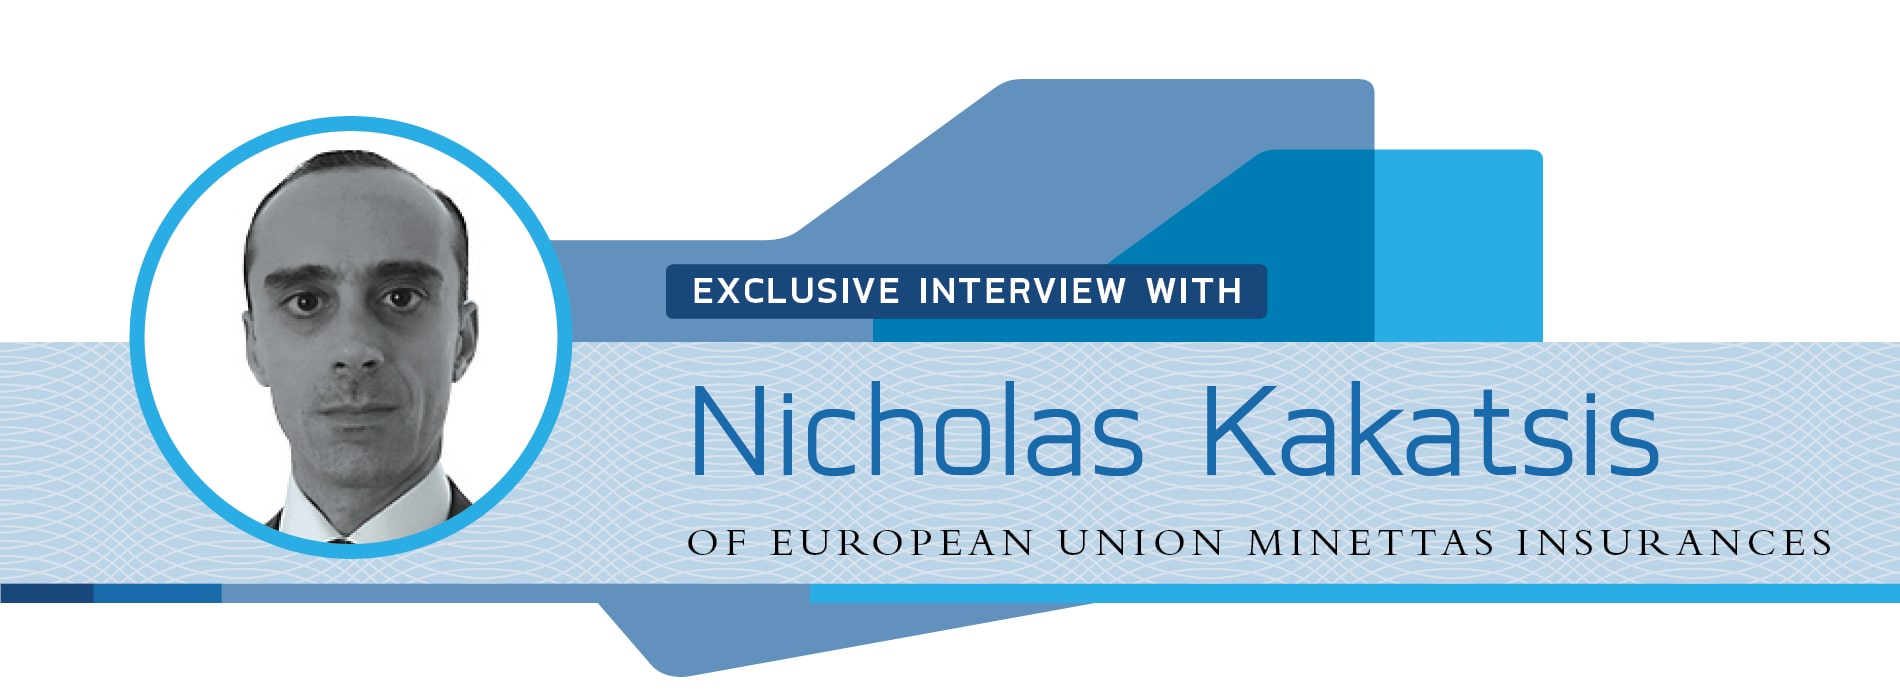 Interview with Nicholas Kakatsis of European Union Minettas Insurances